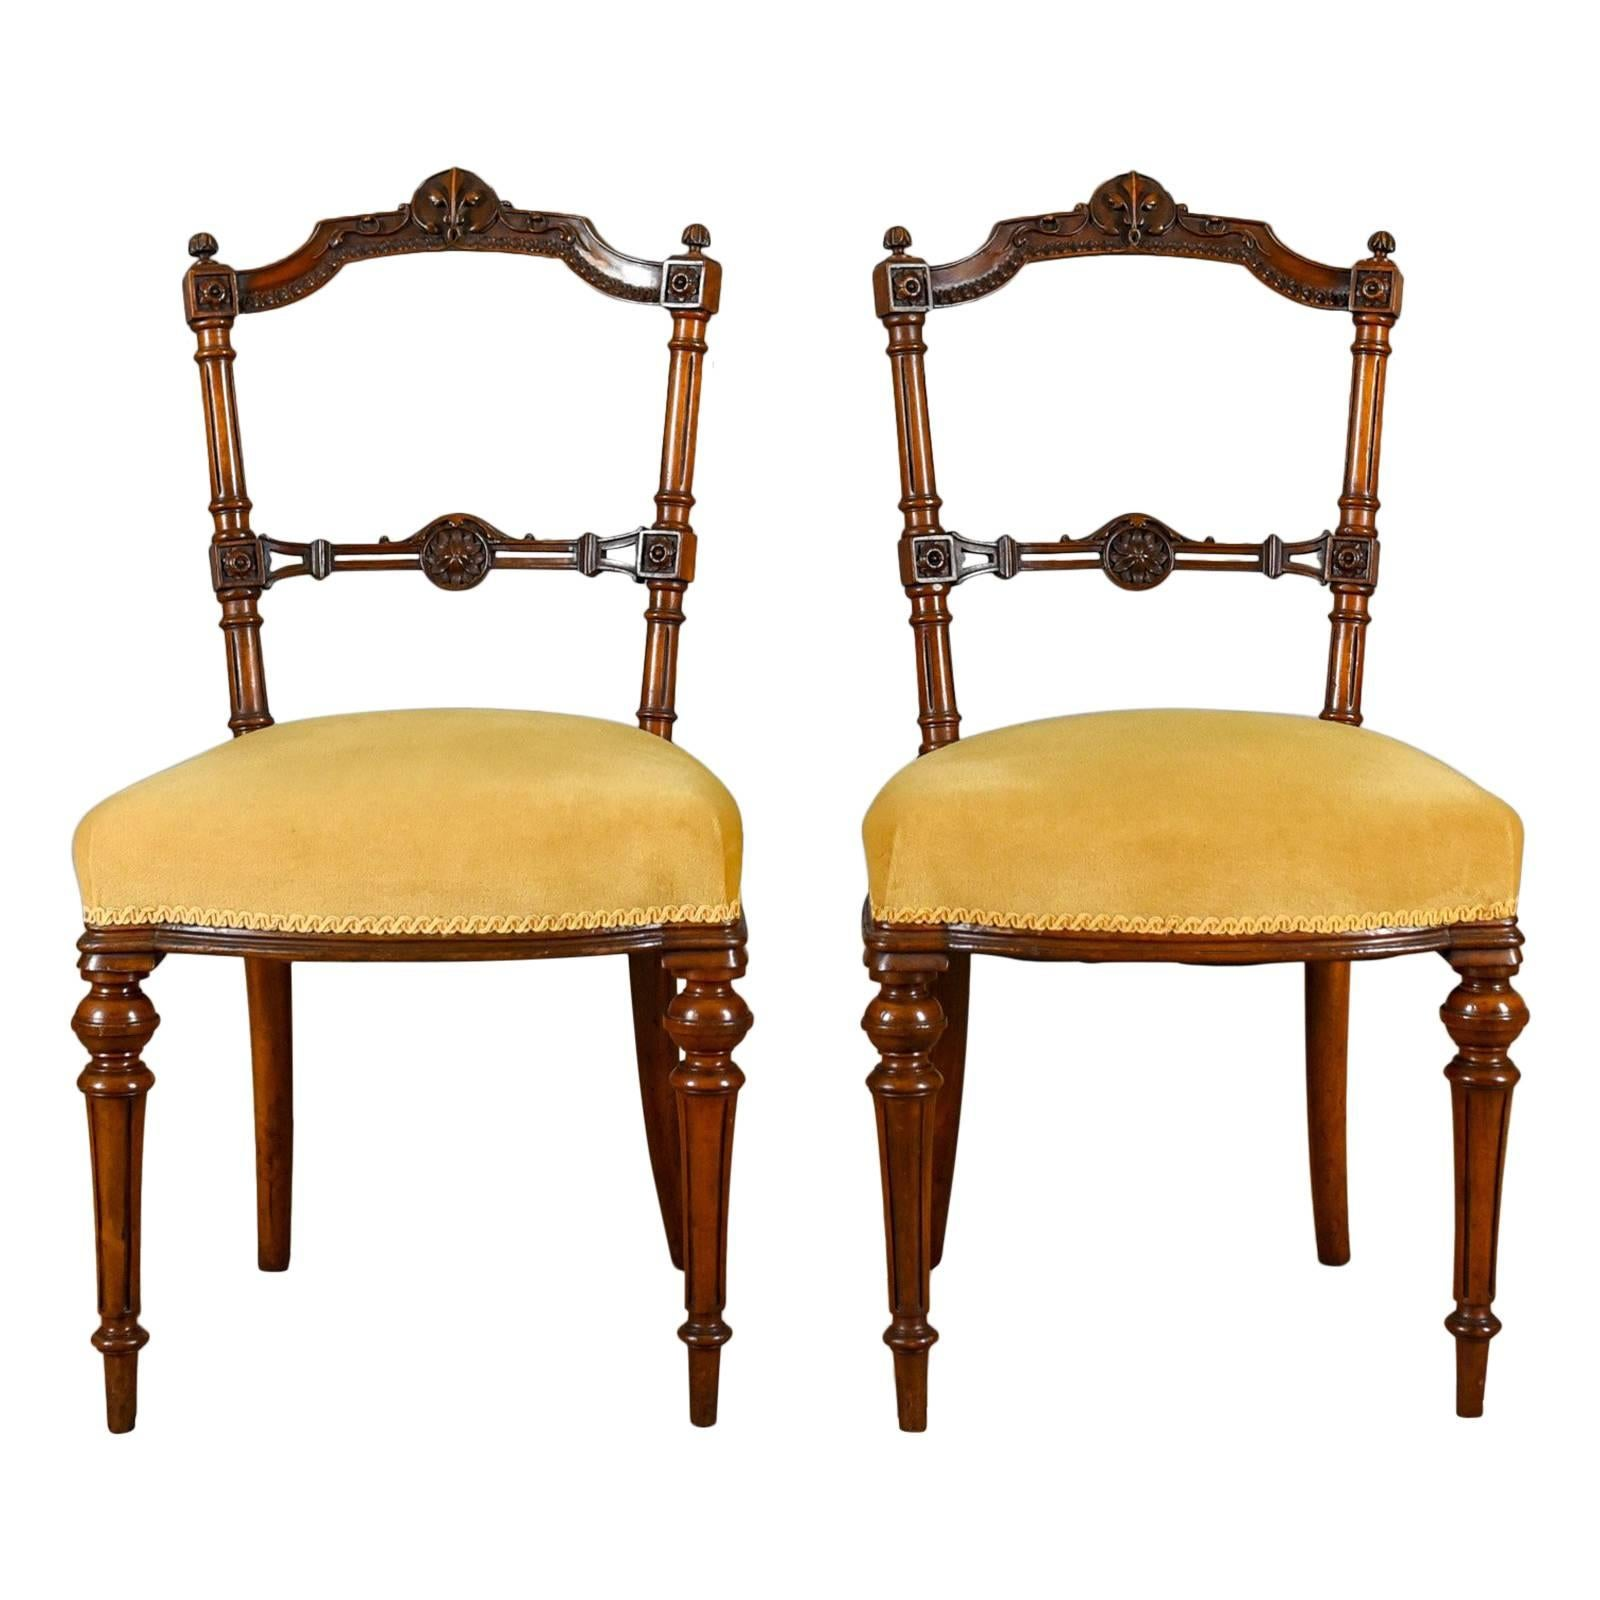 Pair of Antique Chairs English Walnut Aesthetic Period circa 1880  sc 1 st  1stDibs & H. H. Richardson For Sale at 1stdibs